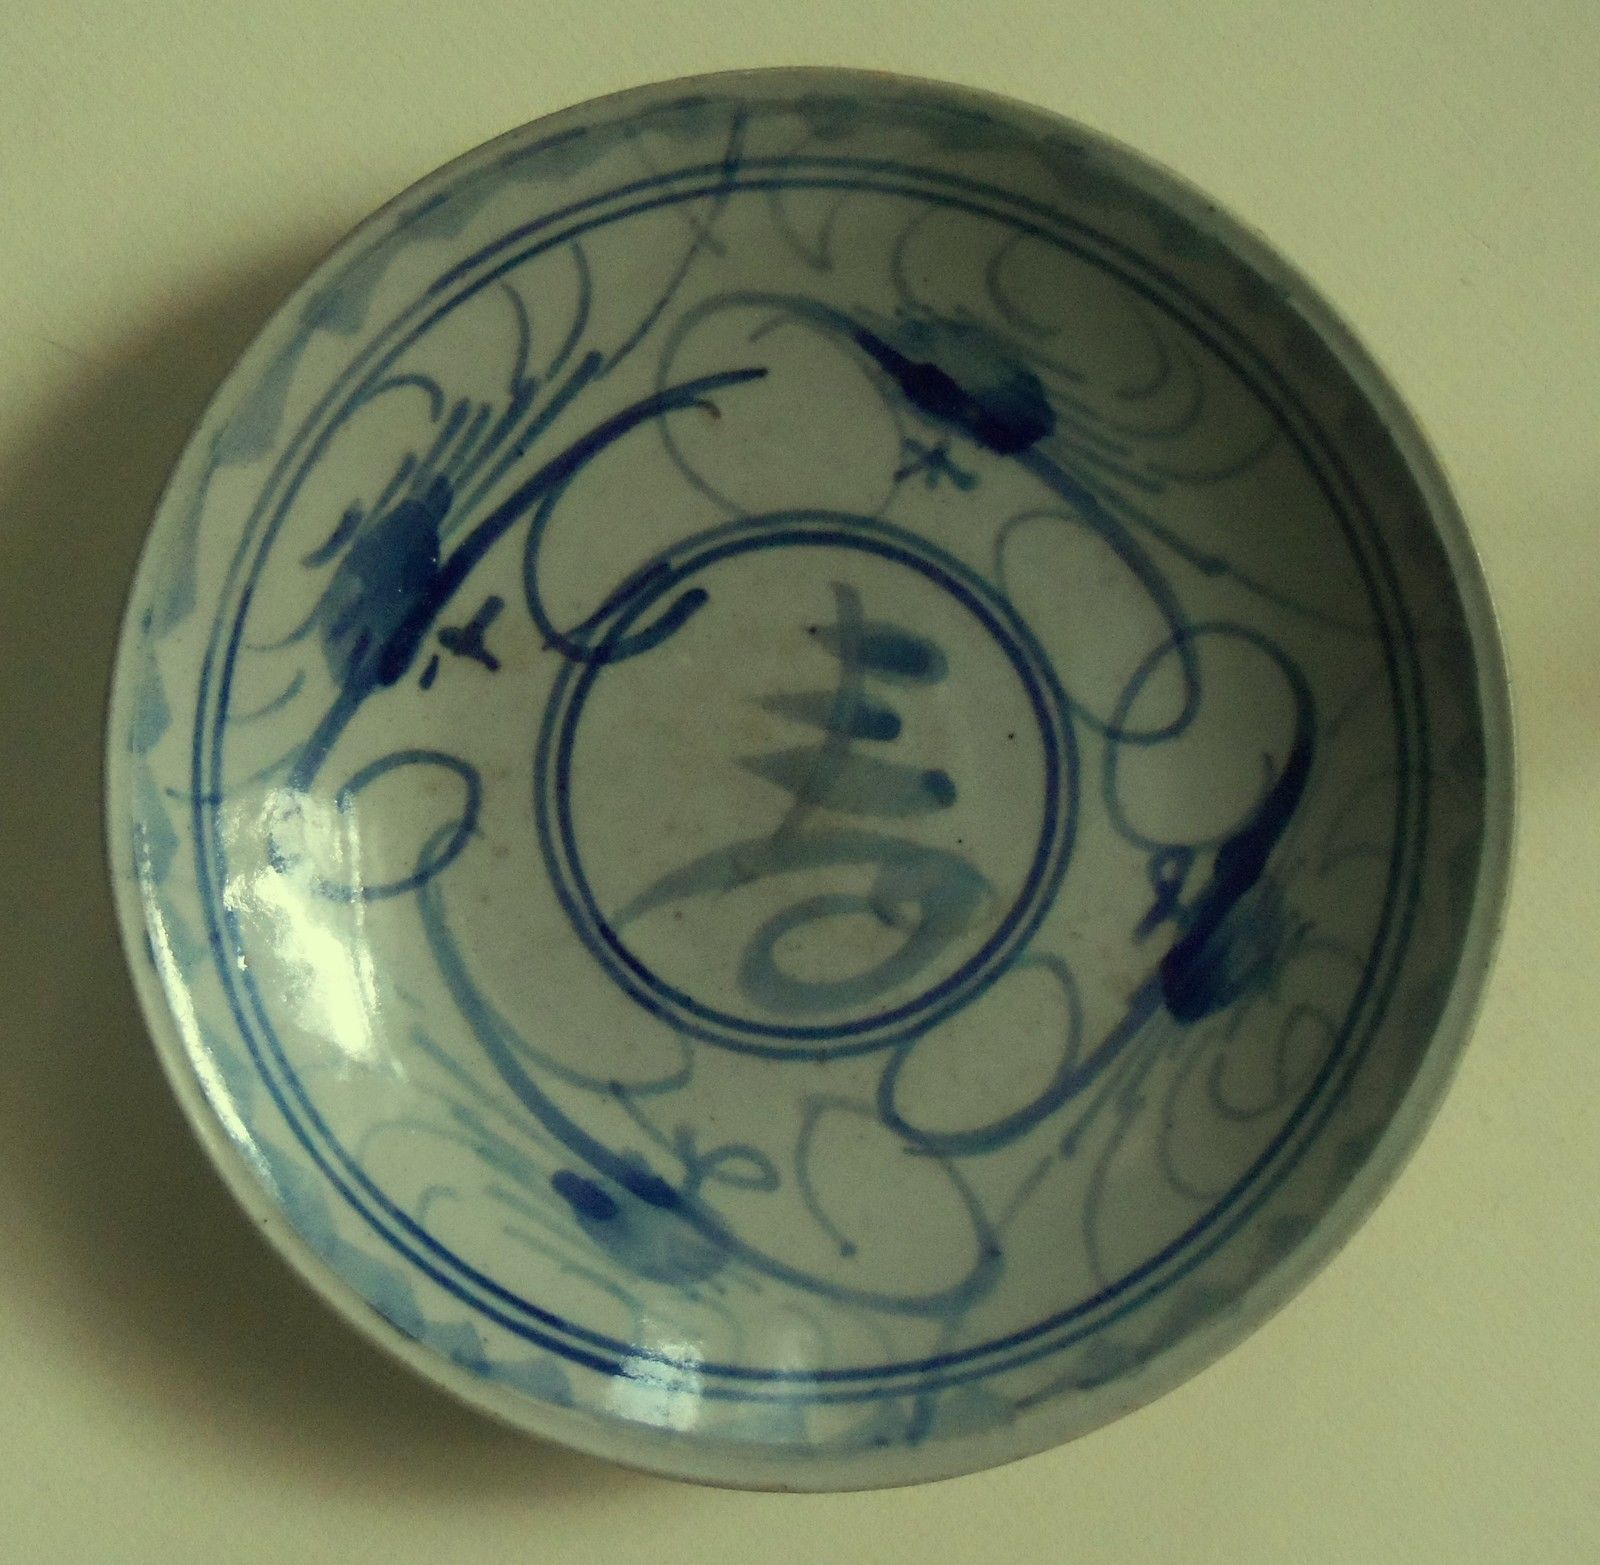 Chinese Swatow Ware Dish Crab And Calligraphy Cobalt Decoration 5 7/8 In. ( & Chinese Swatow Ware Dish Crab And Calligraphy Cobalt Decoration 5 7 ...